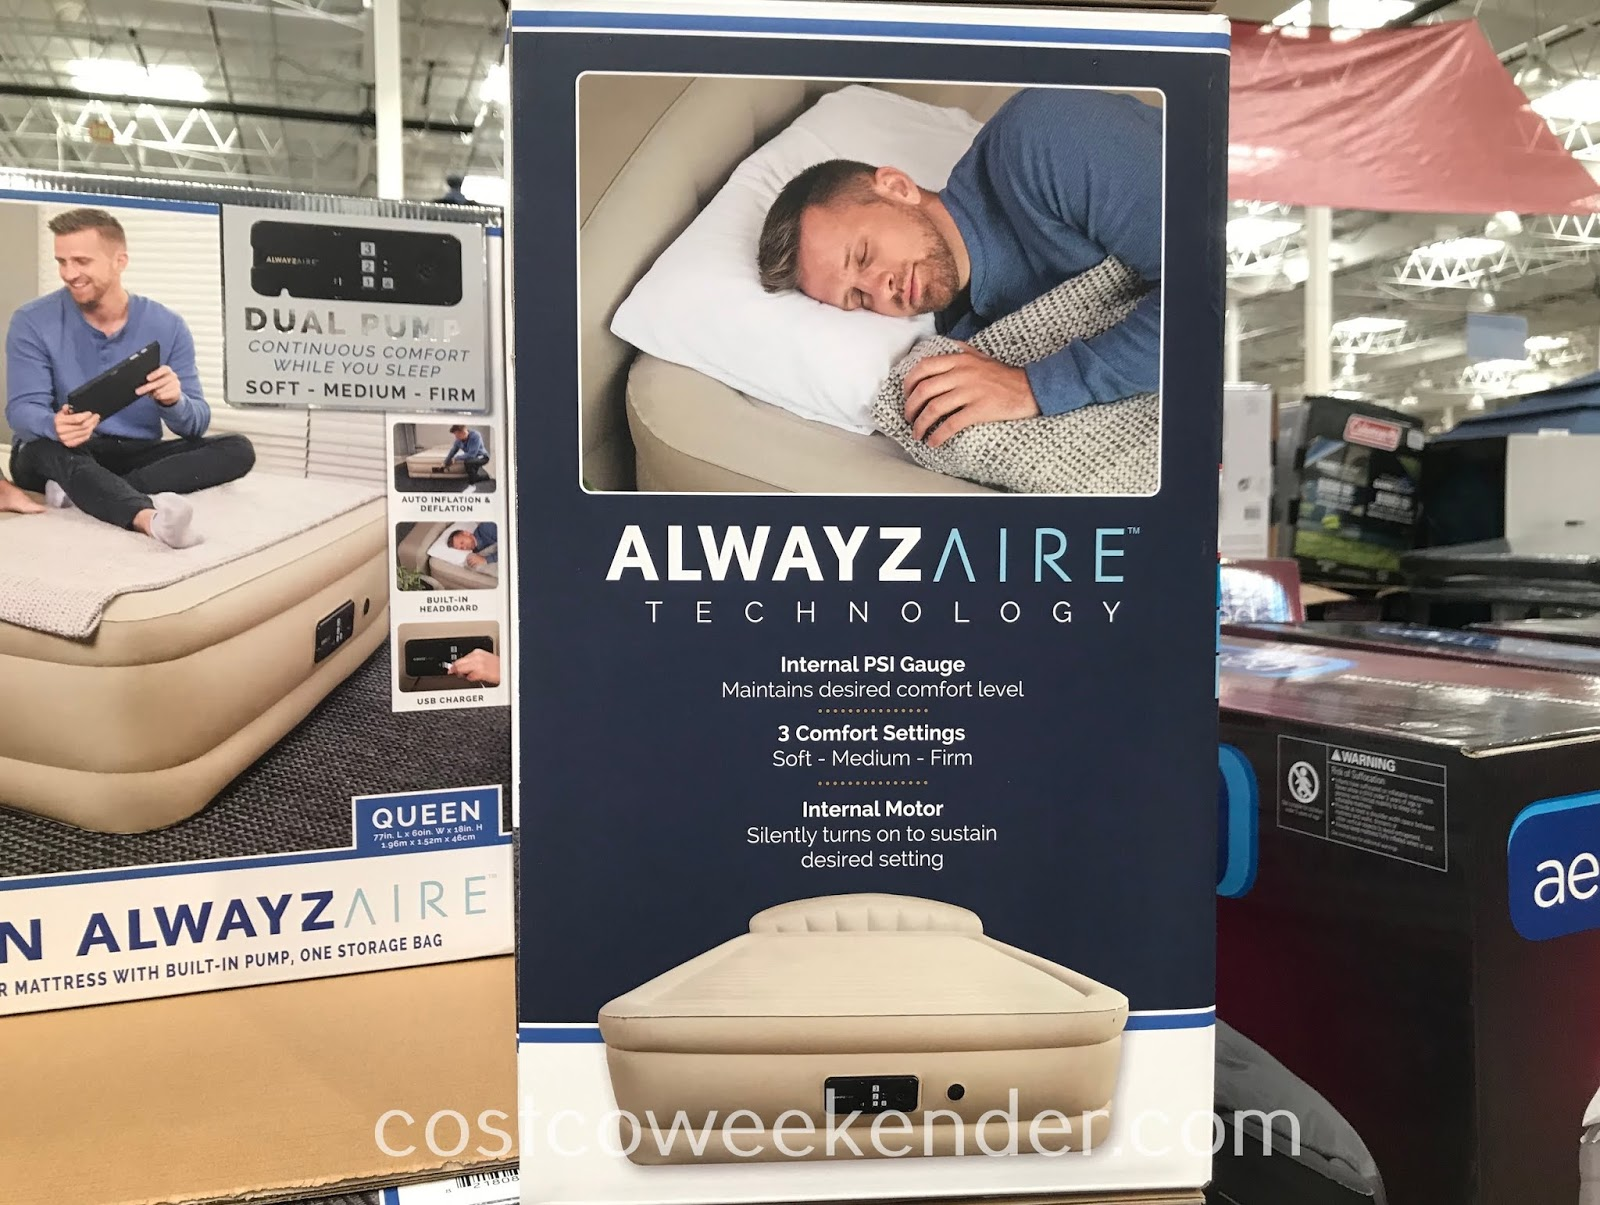 Costco 1290688 - Spring Air Queen AlwaysAire Airbed never loses air while in use ensuring a comfortable night's rest